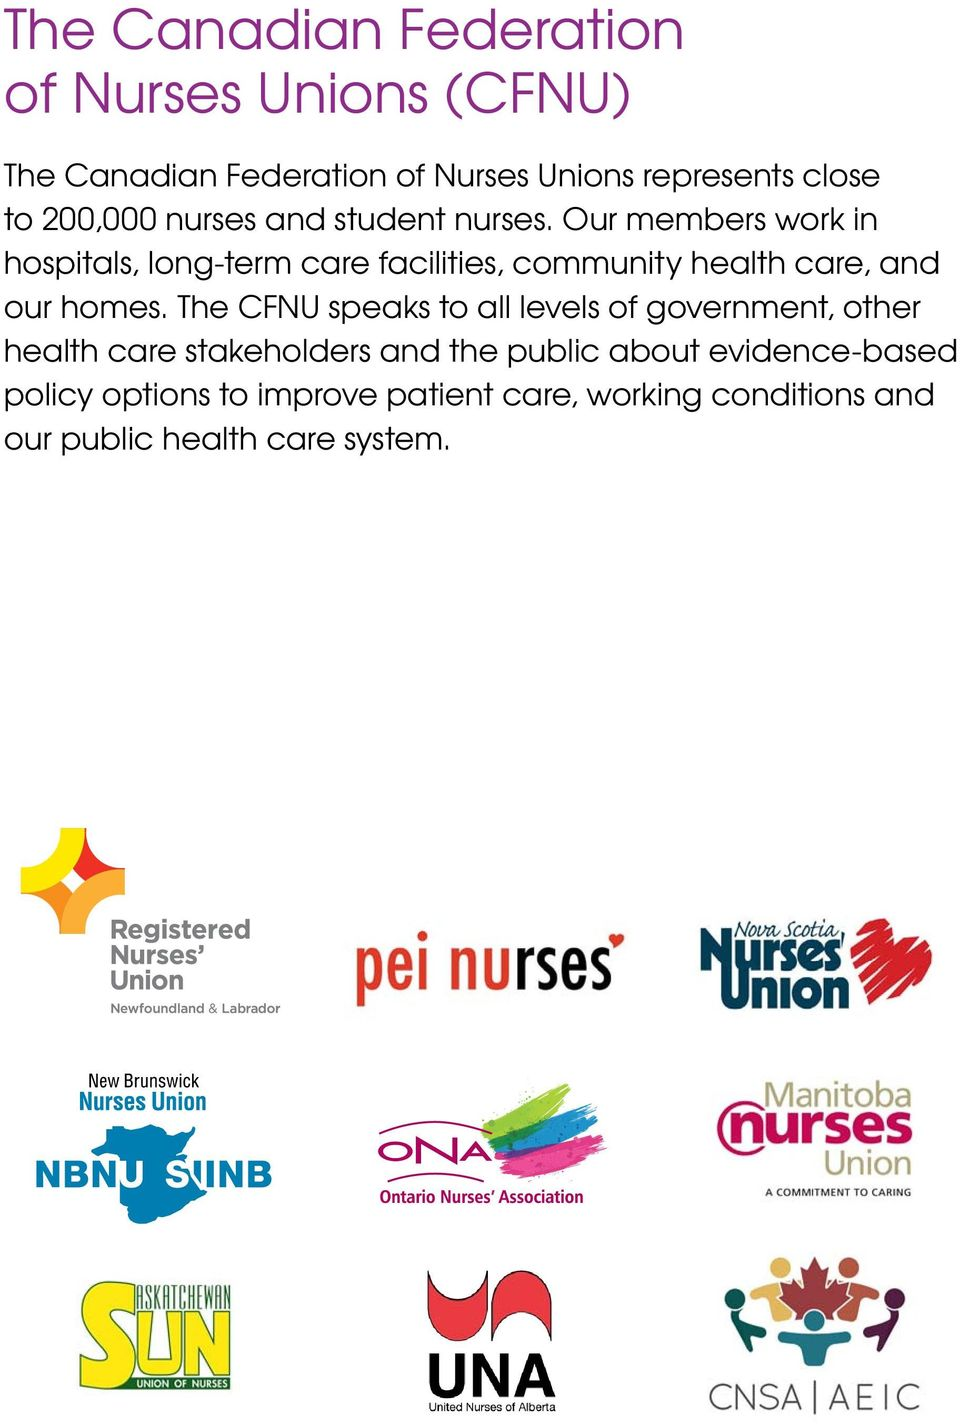 Our members work in hospitals, long-term care facilities, community health care, and our homes.